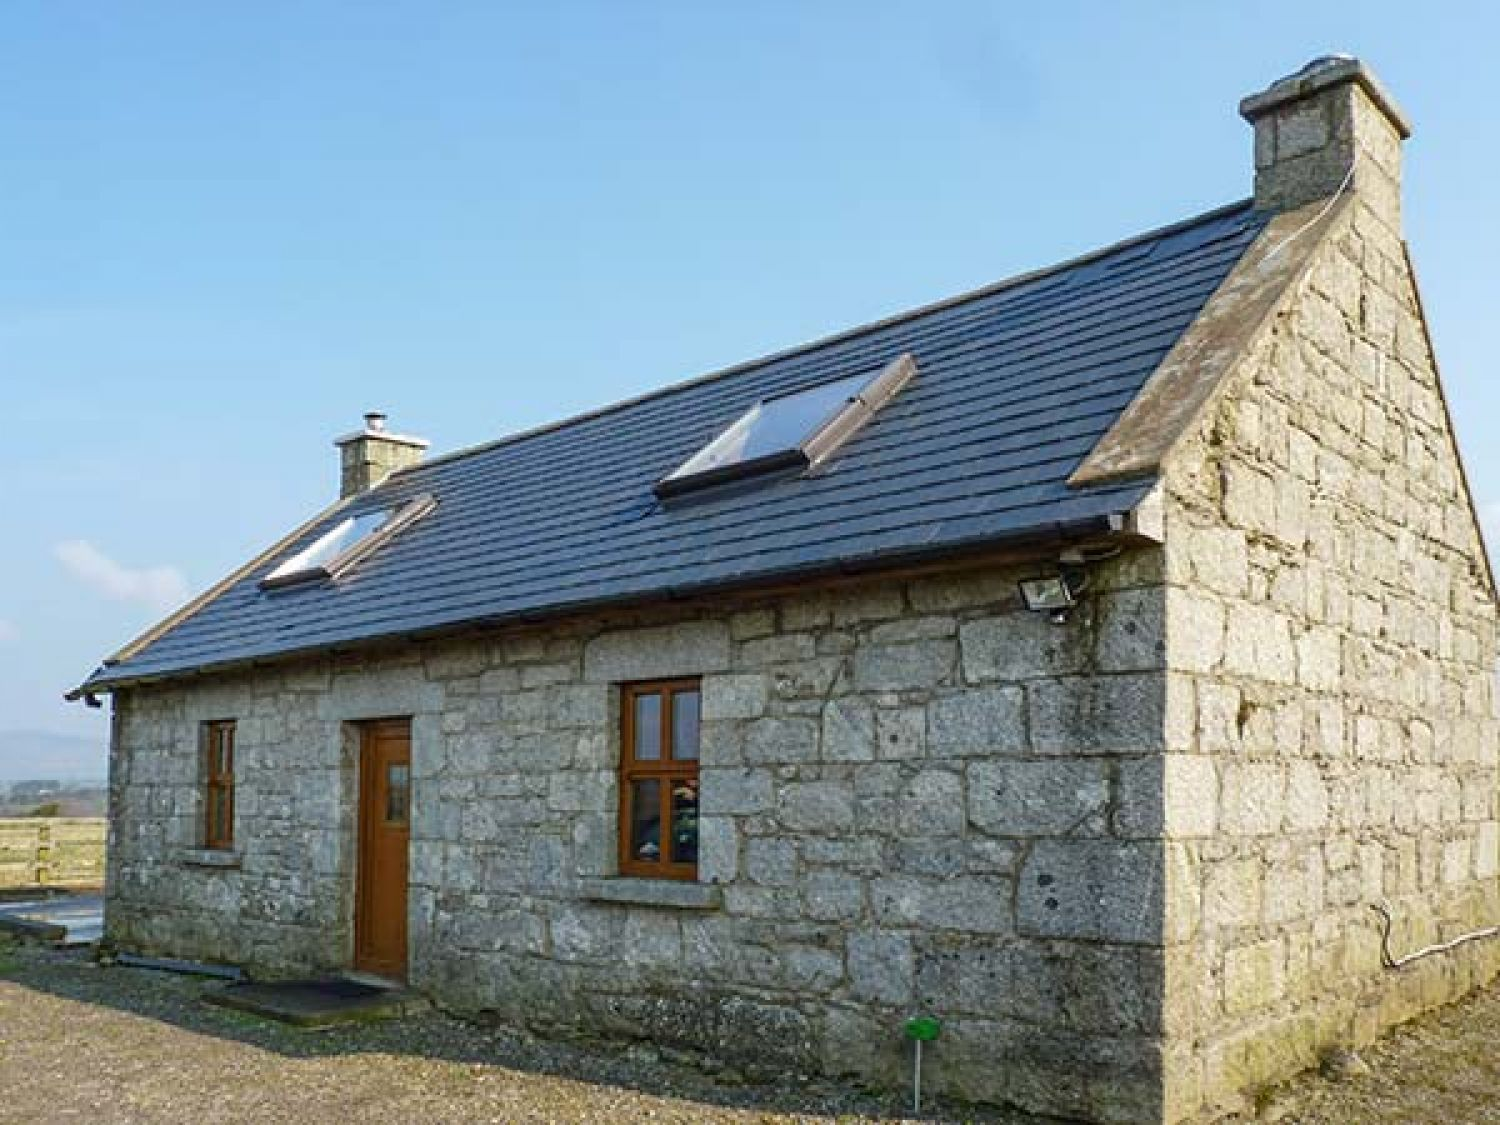 self cottage hideaway honeymoon couples cottages yorkshire in catering ireland for dales